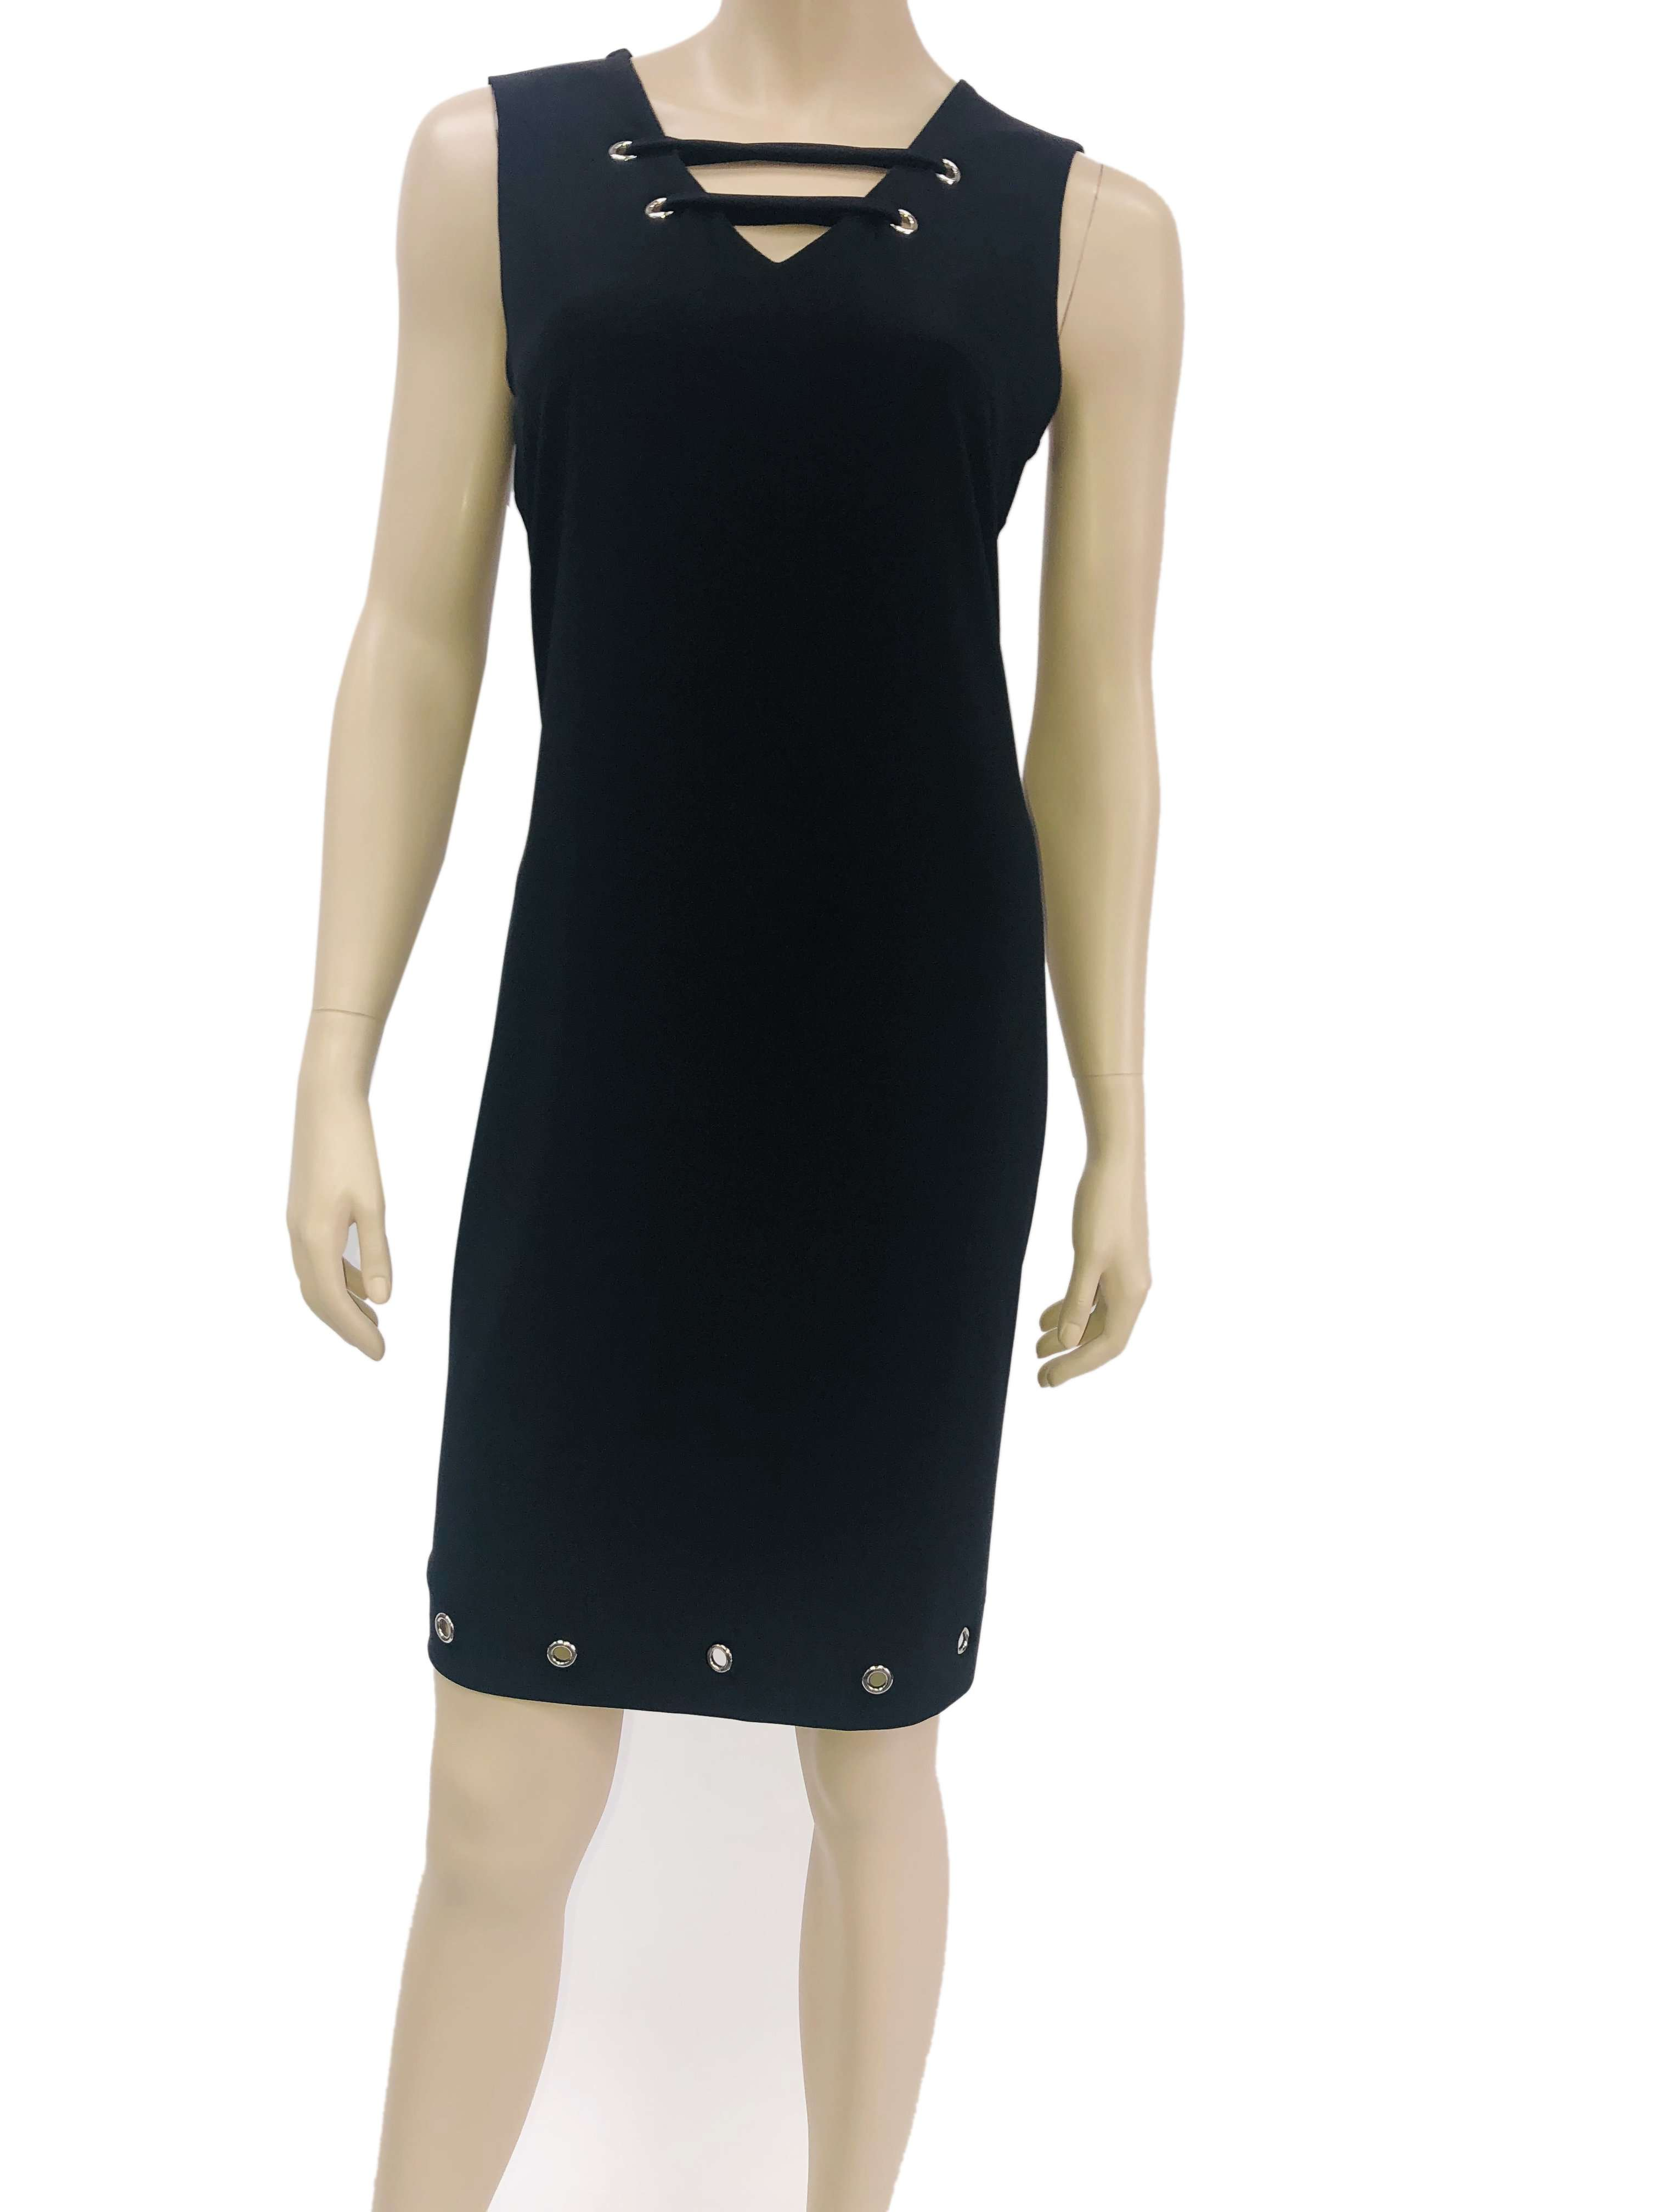 Women's Dresses on Sale Black Sleeveless Dress  XLarge Size - Made in Canada - Yvonne Marie - Yvonne Marie